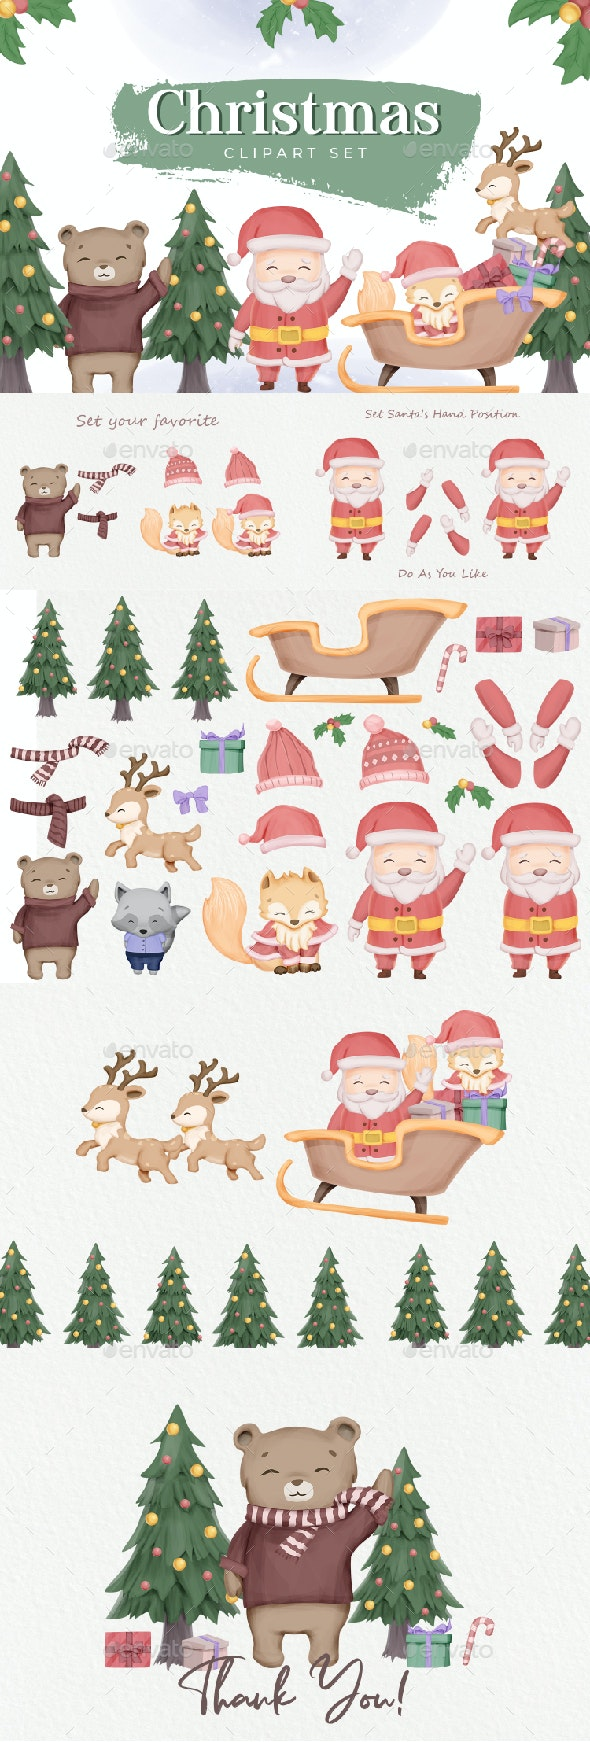 Christmas Clipart Character Set - Characters Illustrations